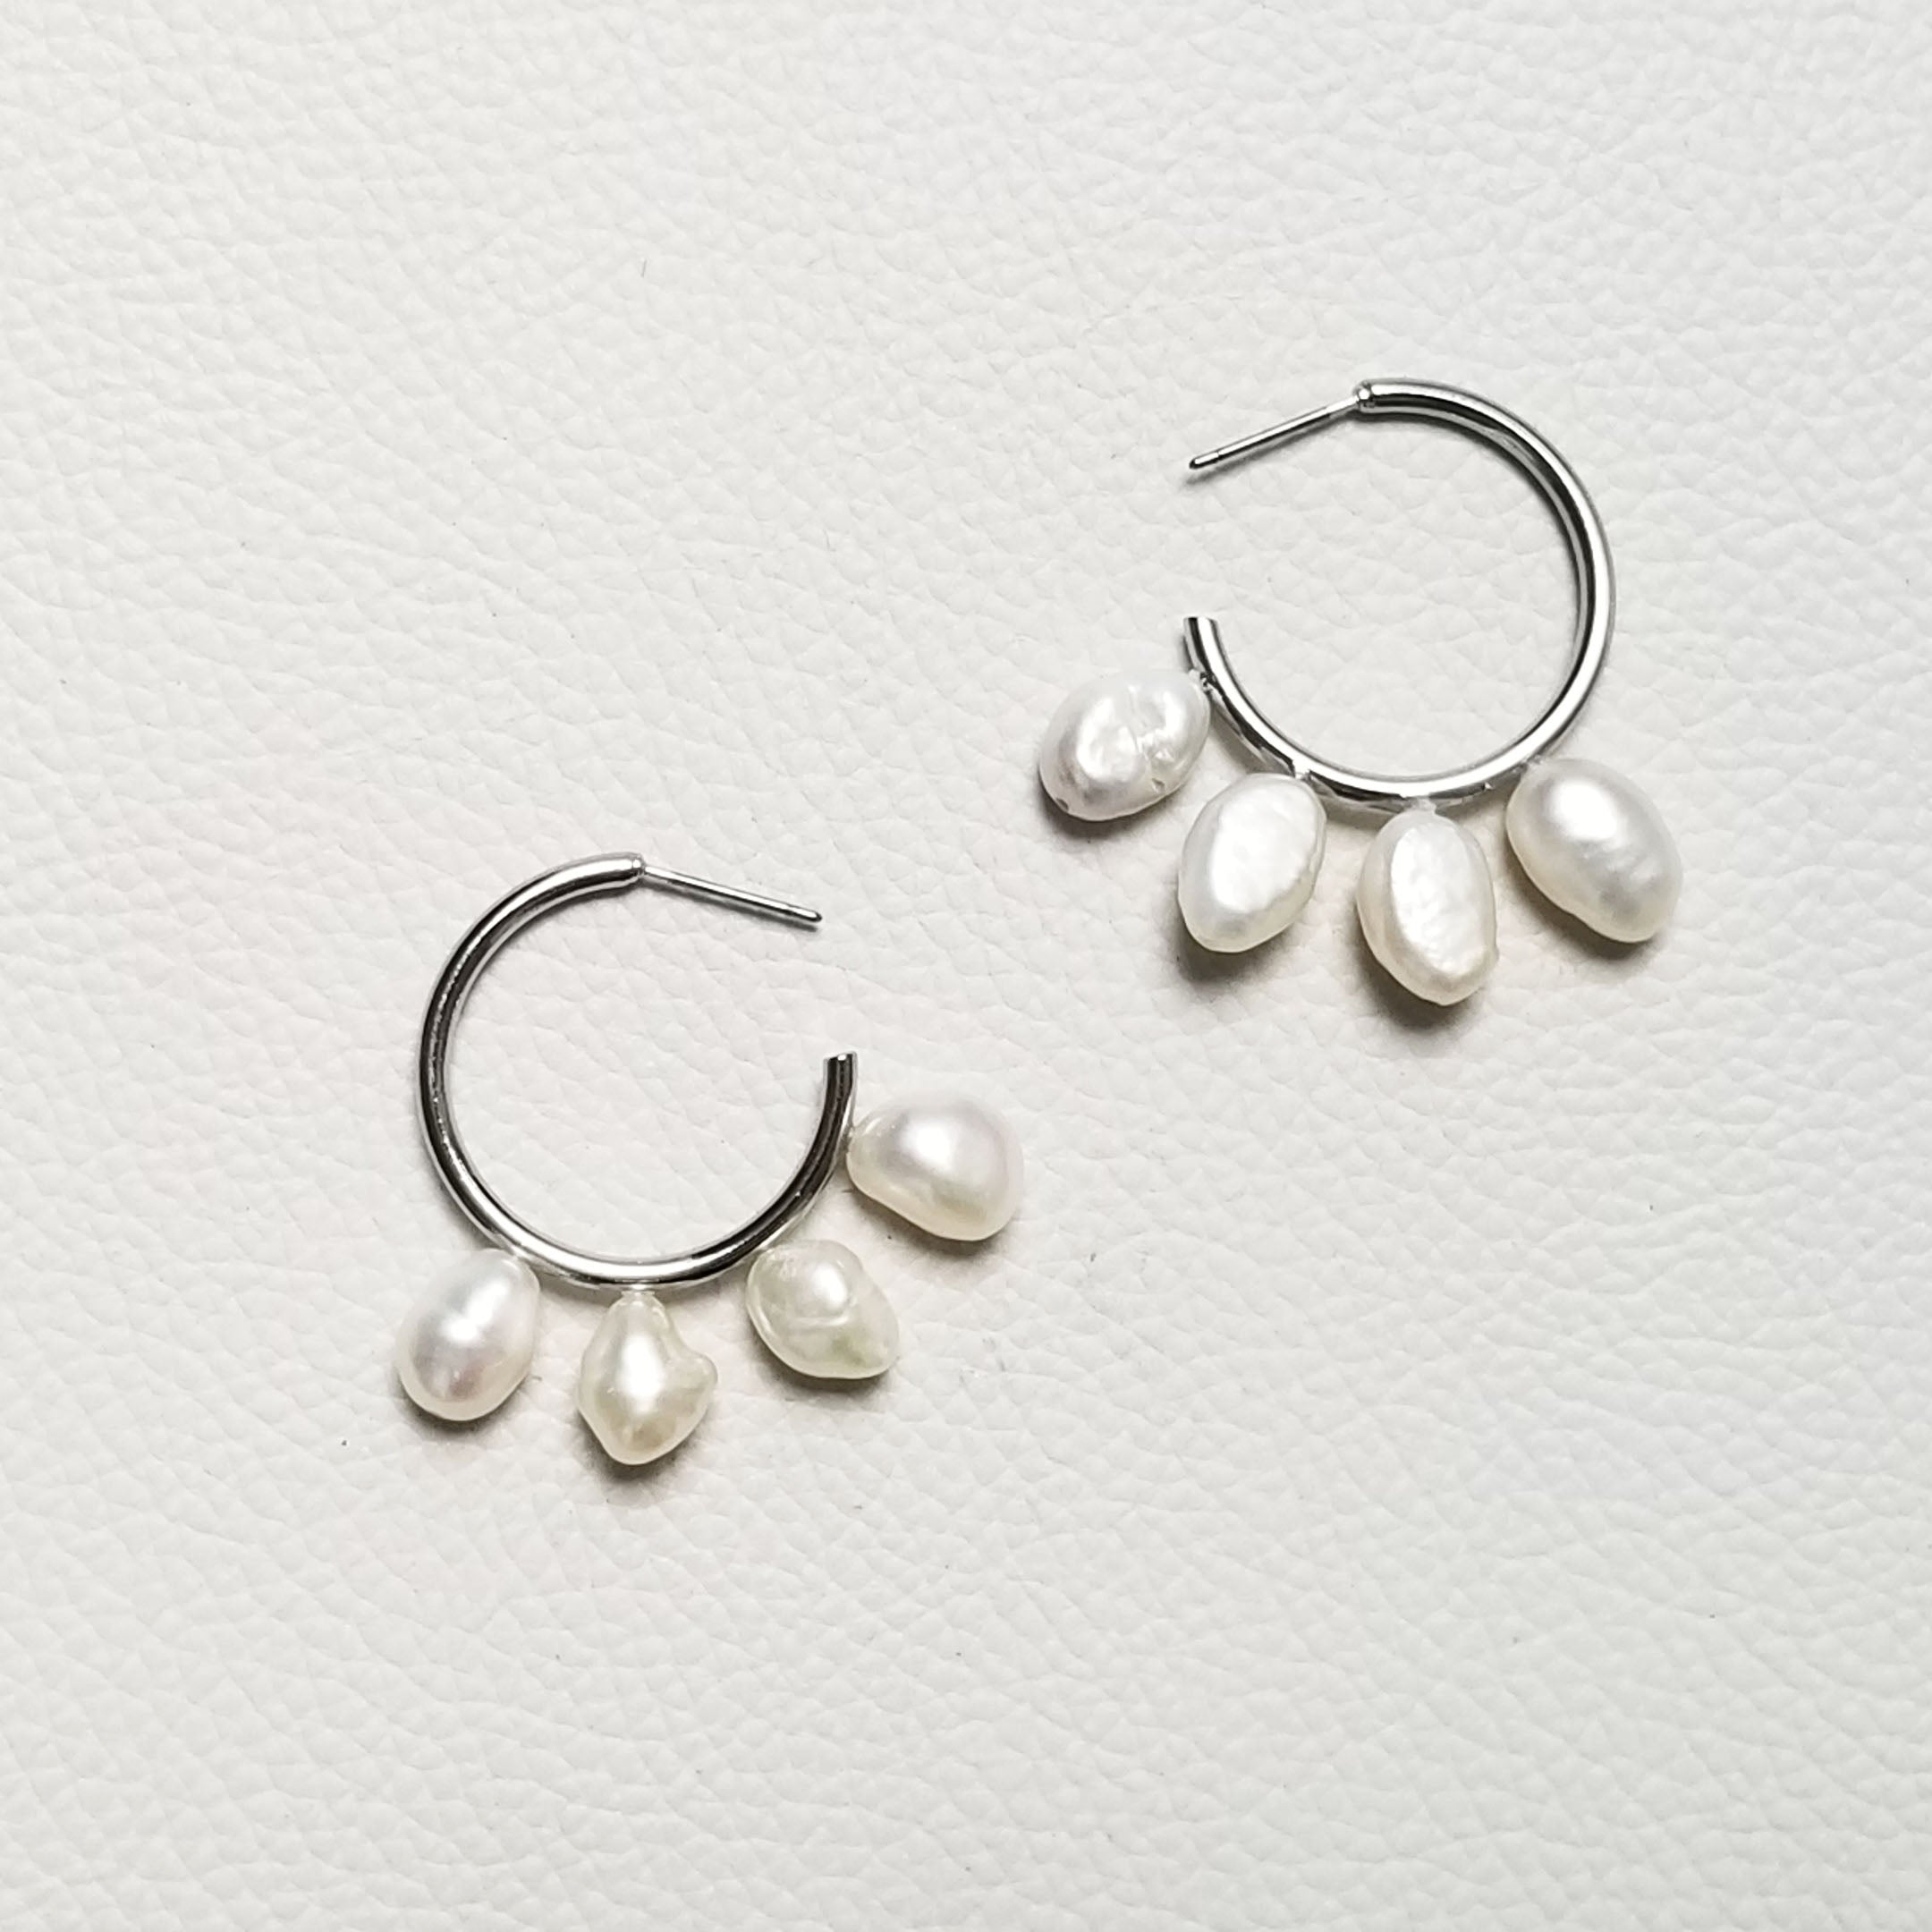 52020005 EARRINGS